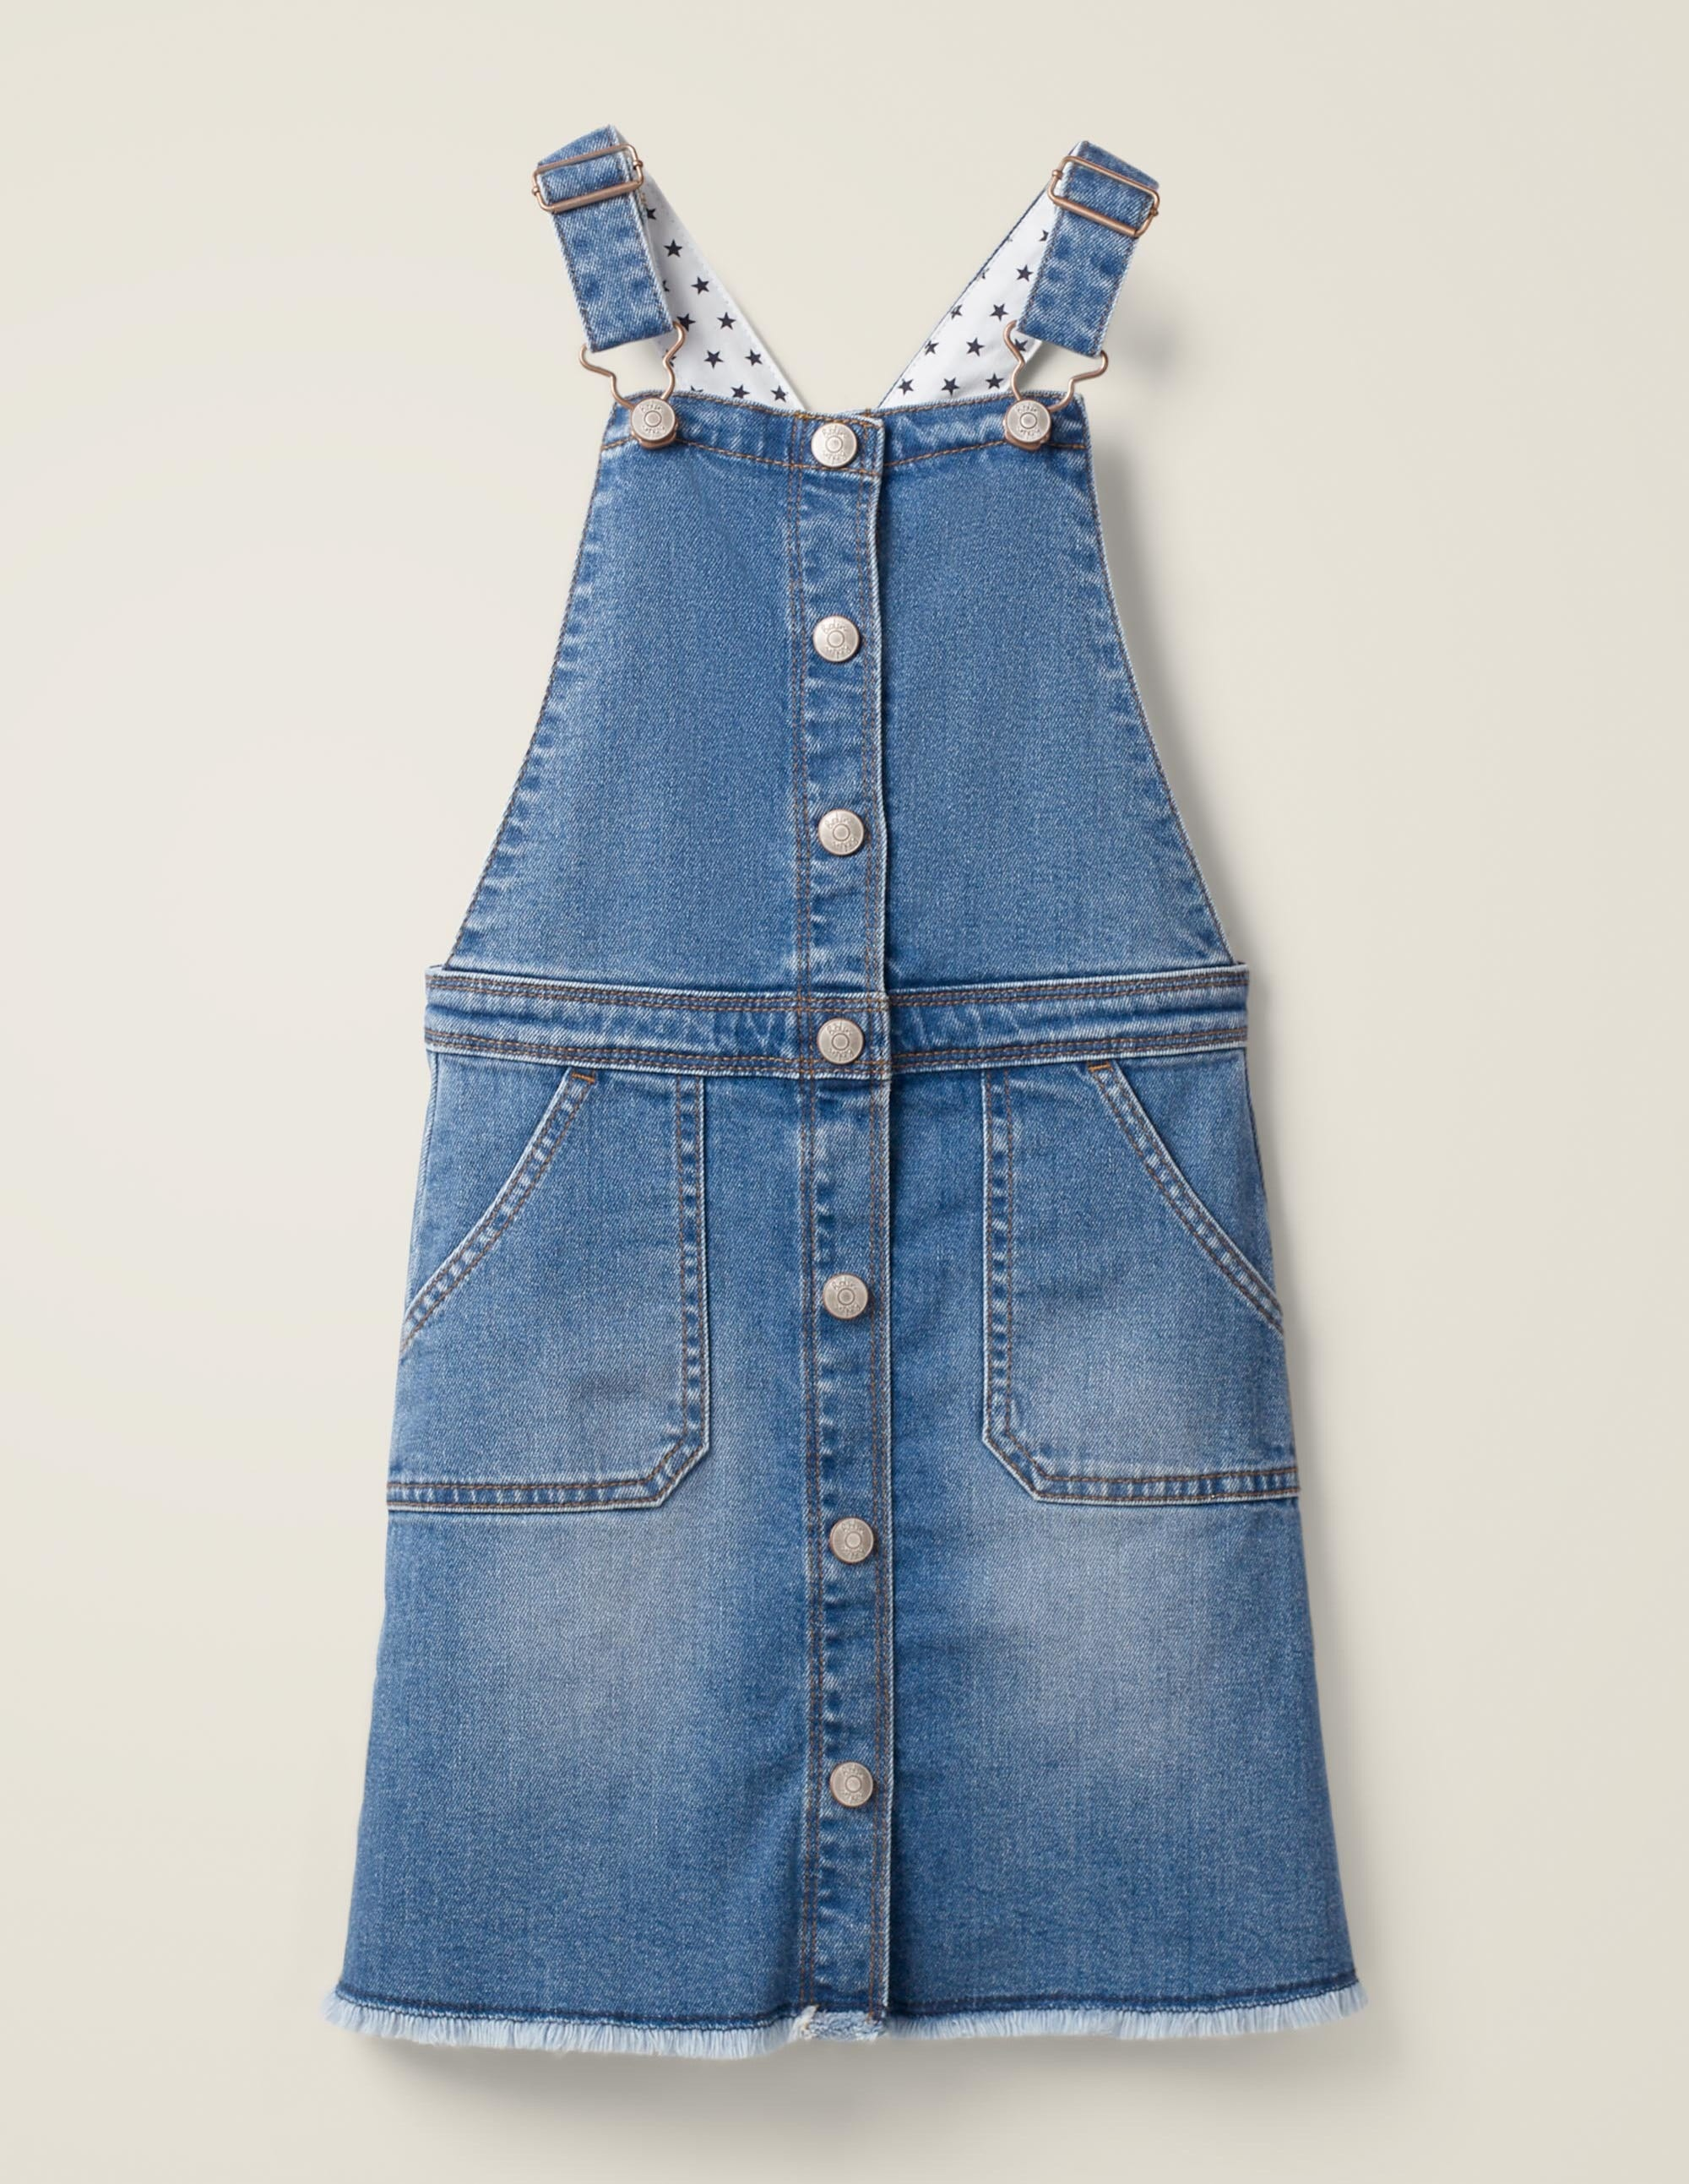 Boden Button Through Overall Dress - Mid Vintage Denim